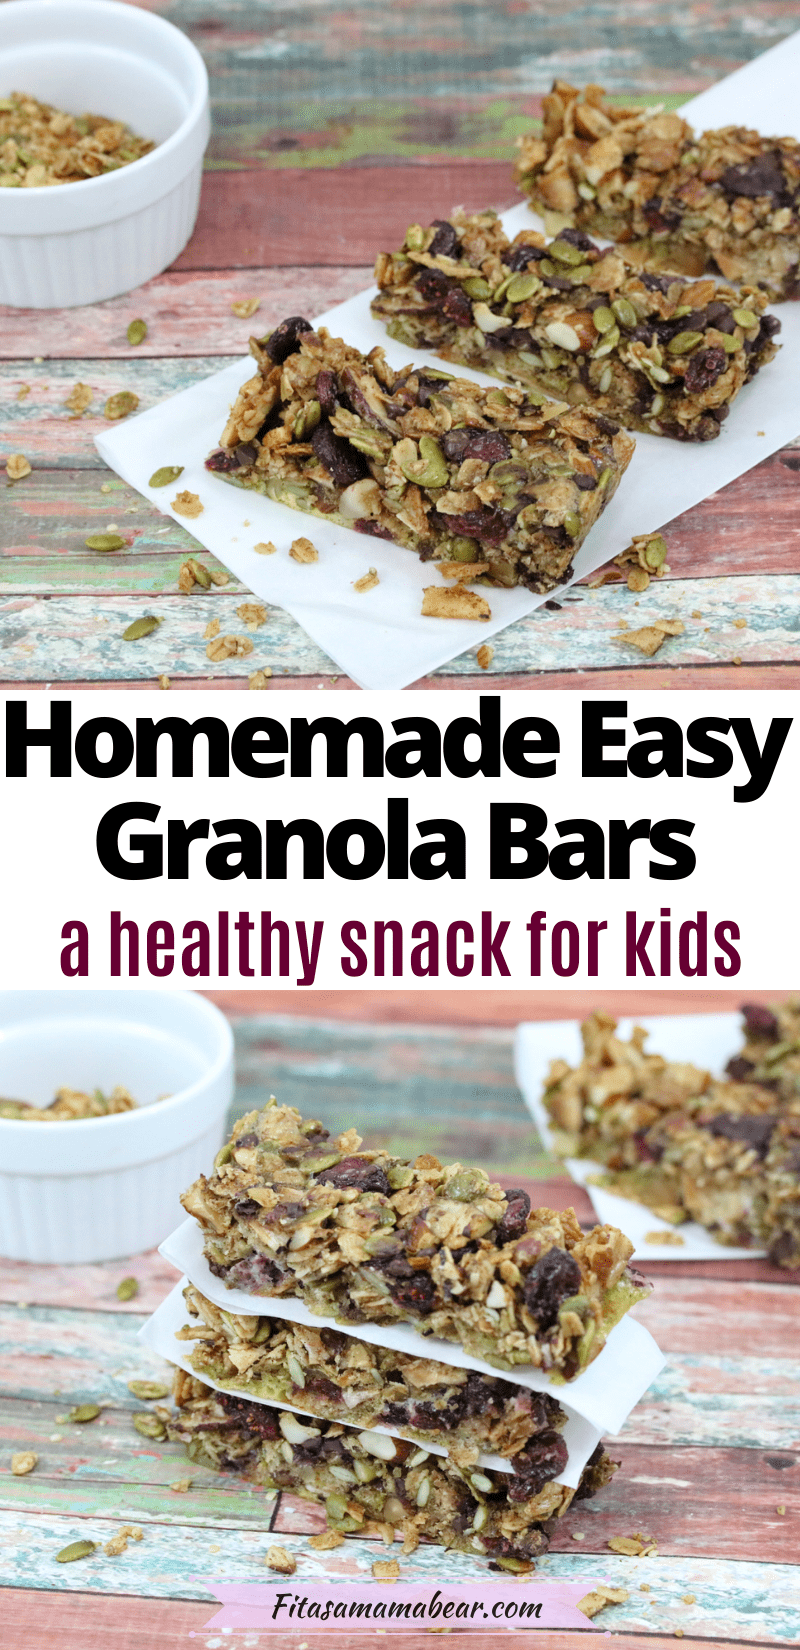 Pinterest image with text: two images of homemade chewy granola bars, the top of the bars lined up on parchment paper and the bottom of the granola bars stacked